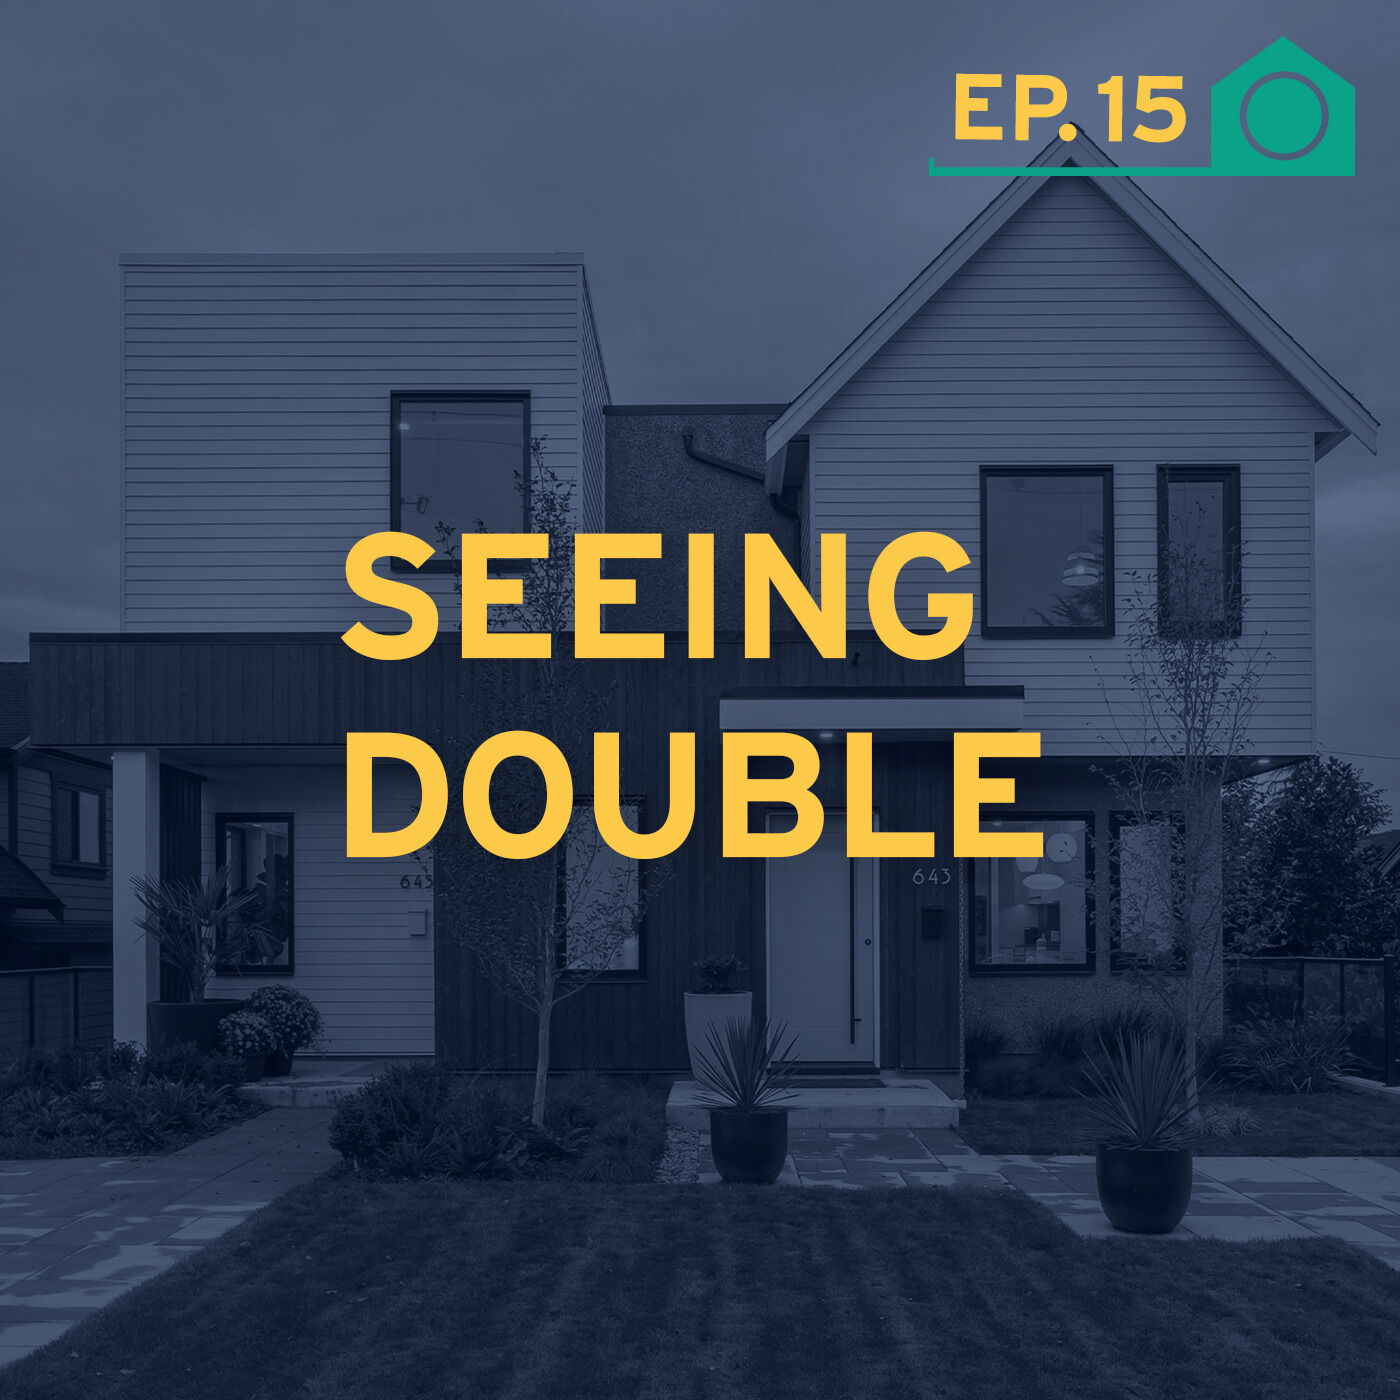 Seeing Double: Duplex Homes and lifestyle benefits